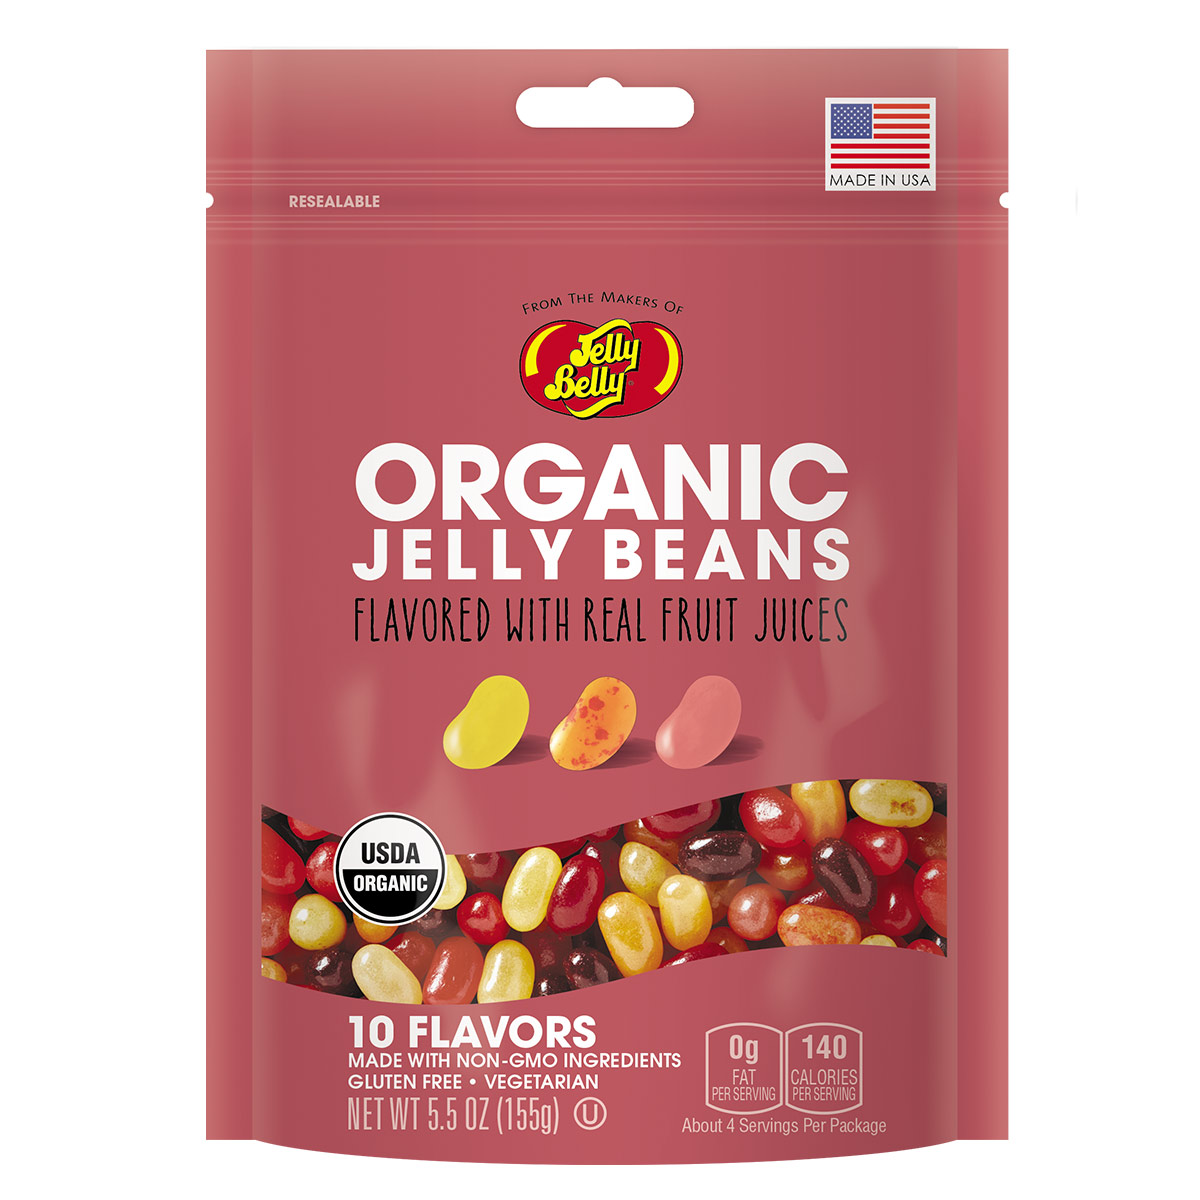 Organic Jelly Beans from the makers of Jelly Belly - 5.5 oz bag ...